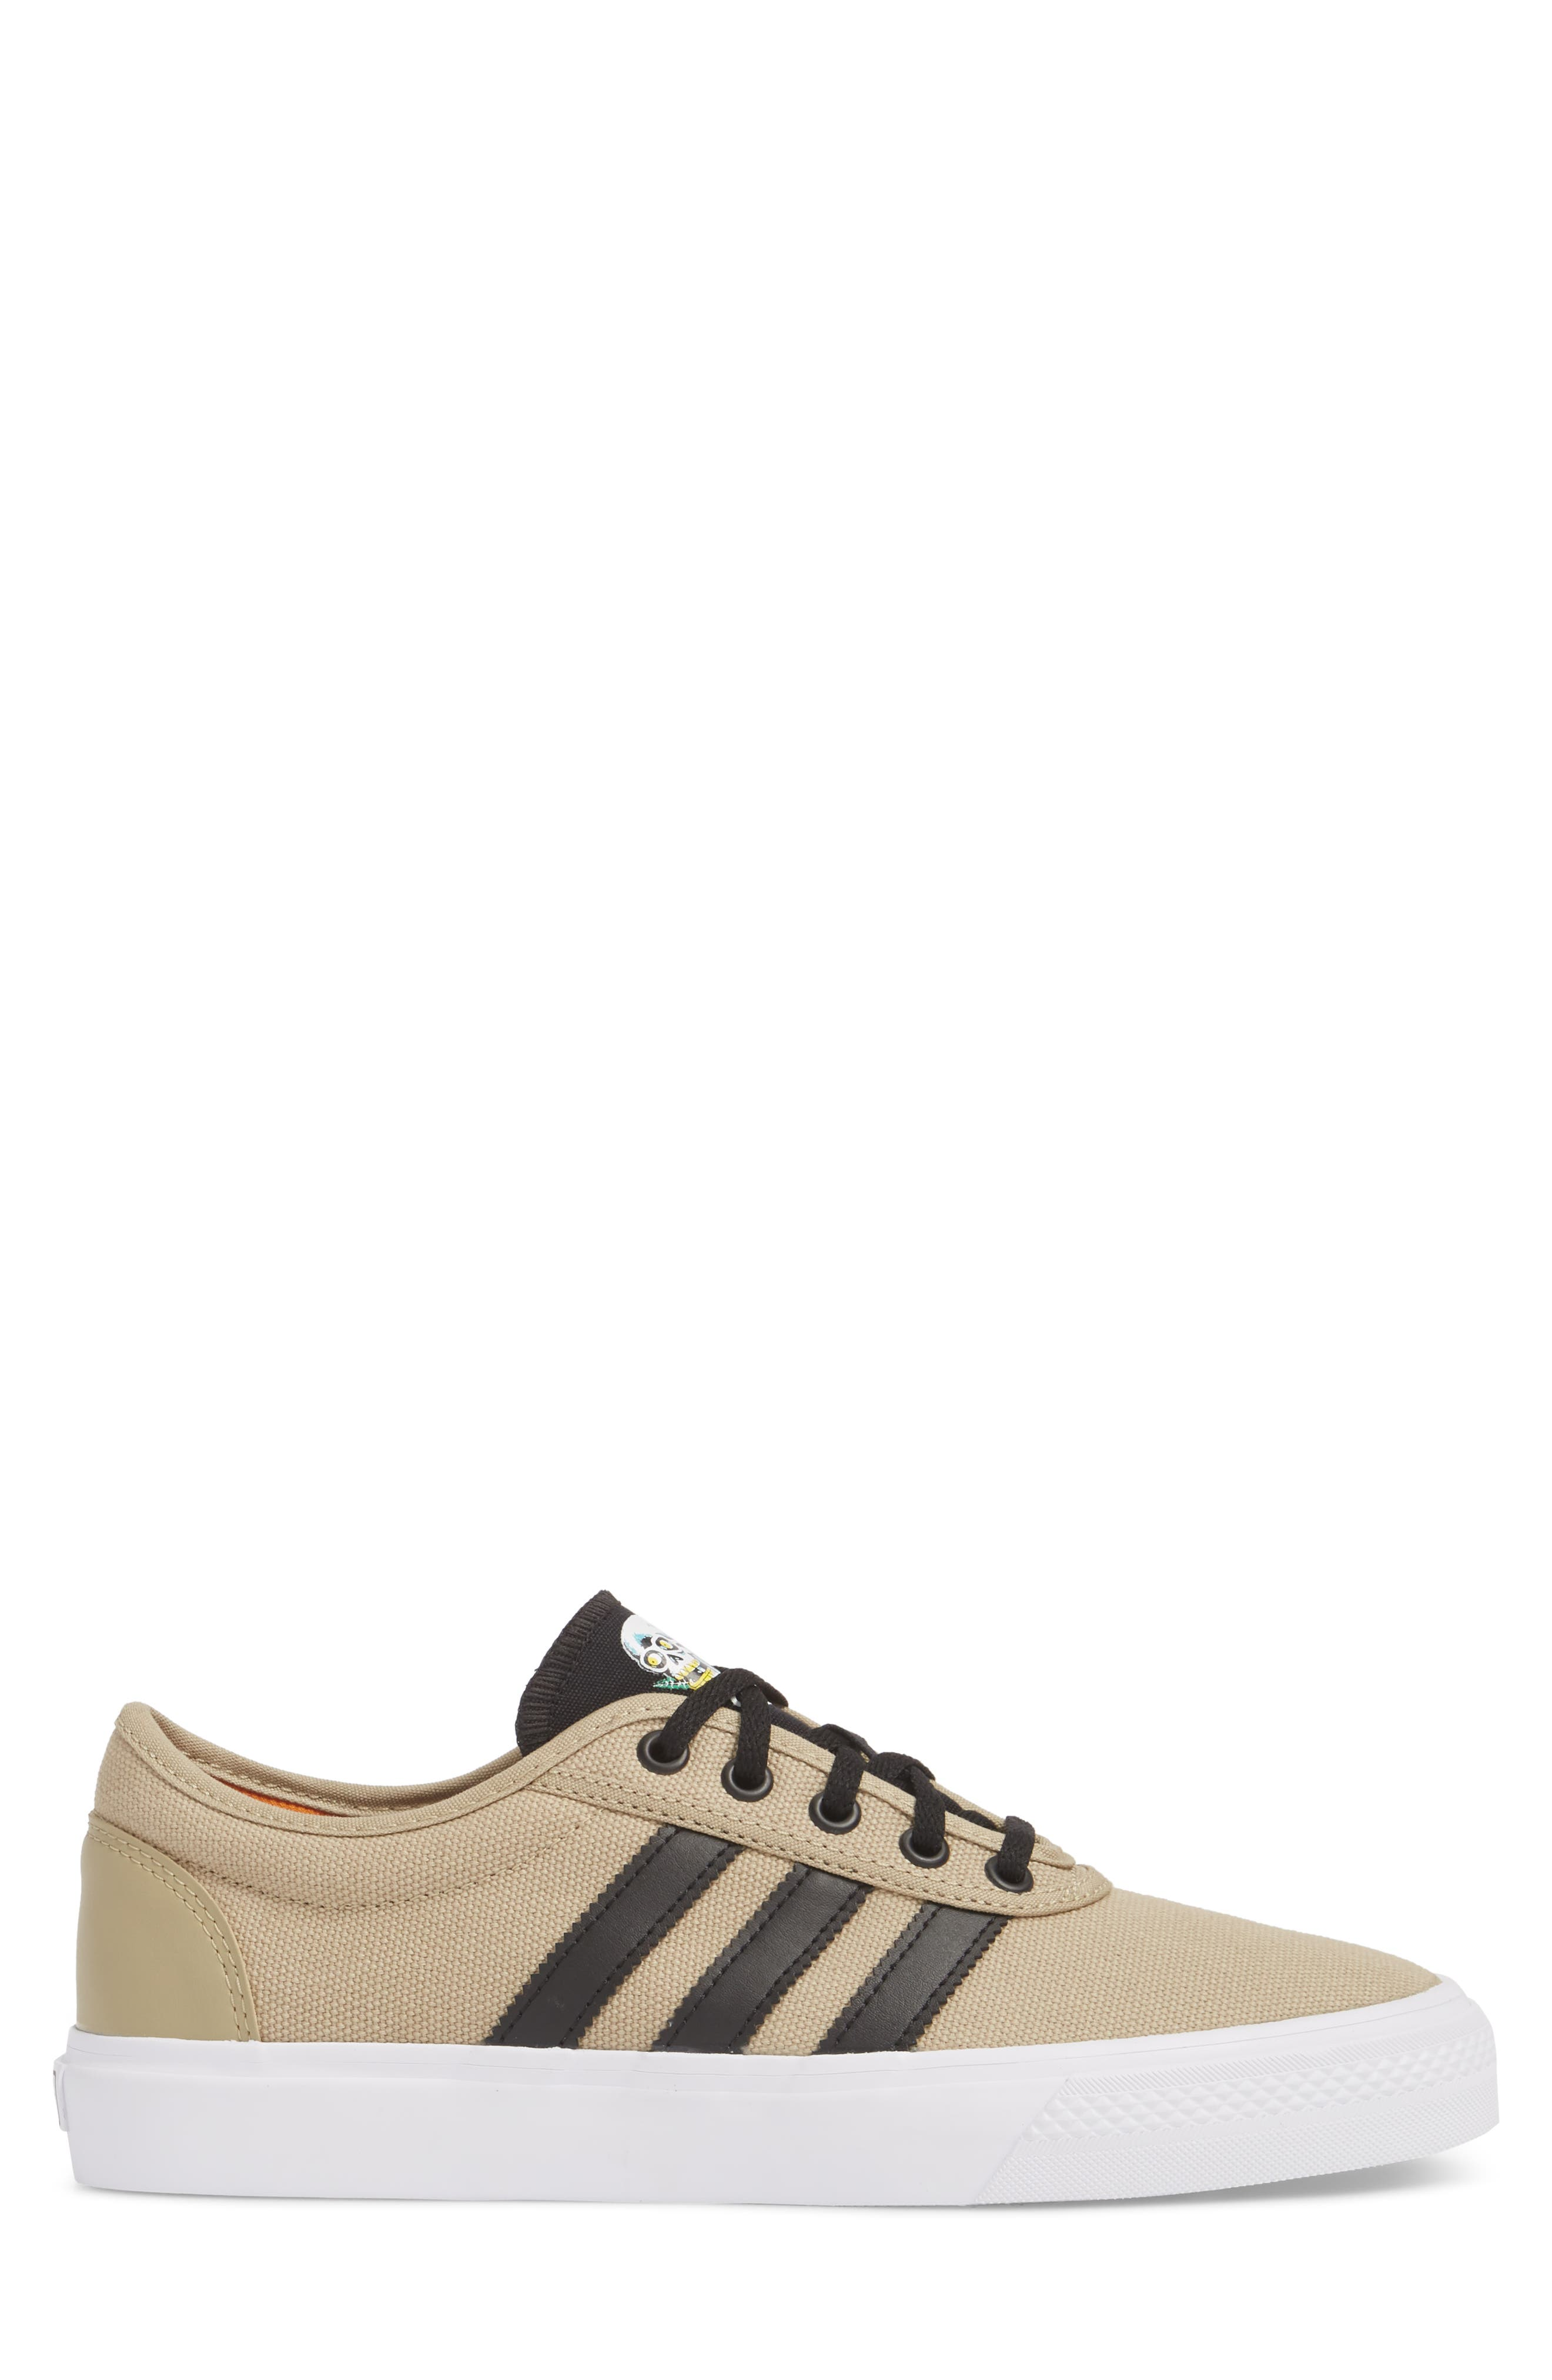 Adiease Premiere Skateboarding Sneaker,                             Alternate thumbnail 3, color,                             Gold/ Core Black/ White